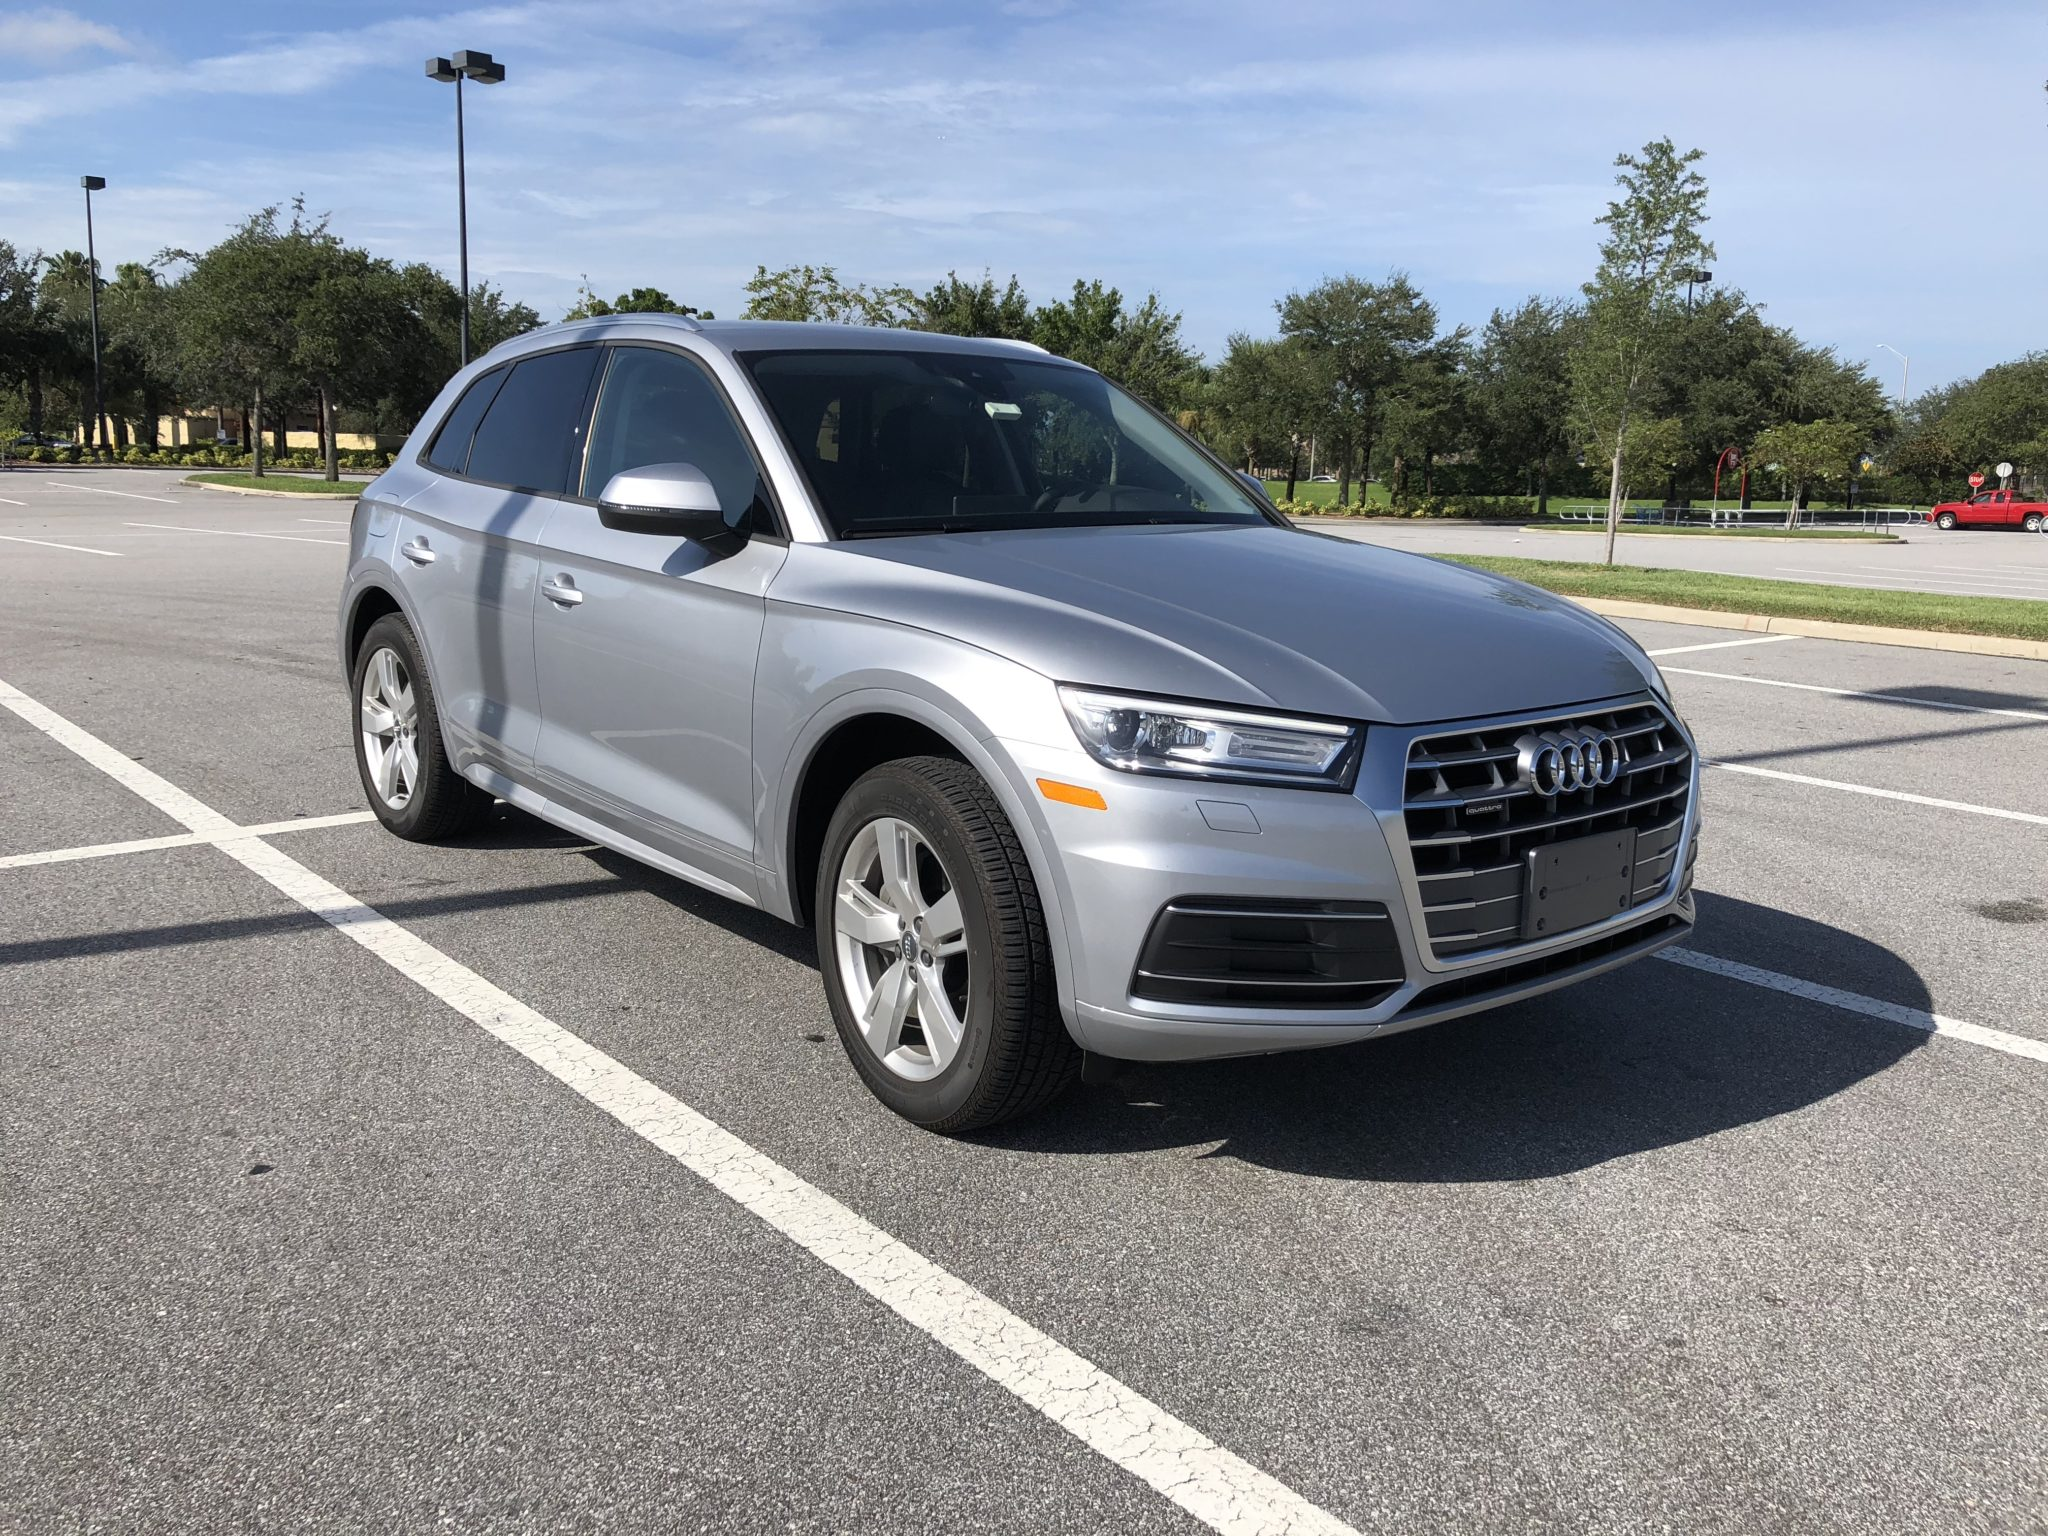 Streamline your car rental process by renting an Audi from Silvercar. Done via an app on your smartphone, avoid the lines, paperwork and hassles!